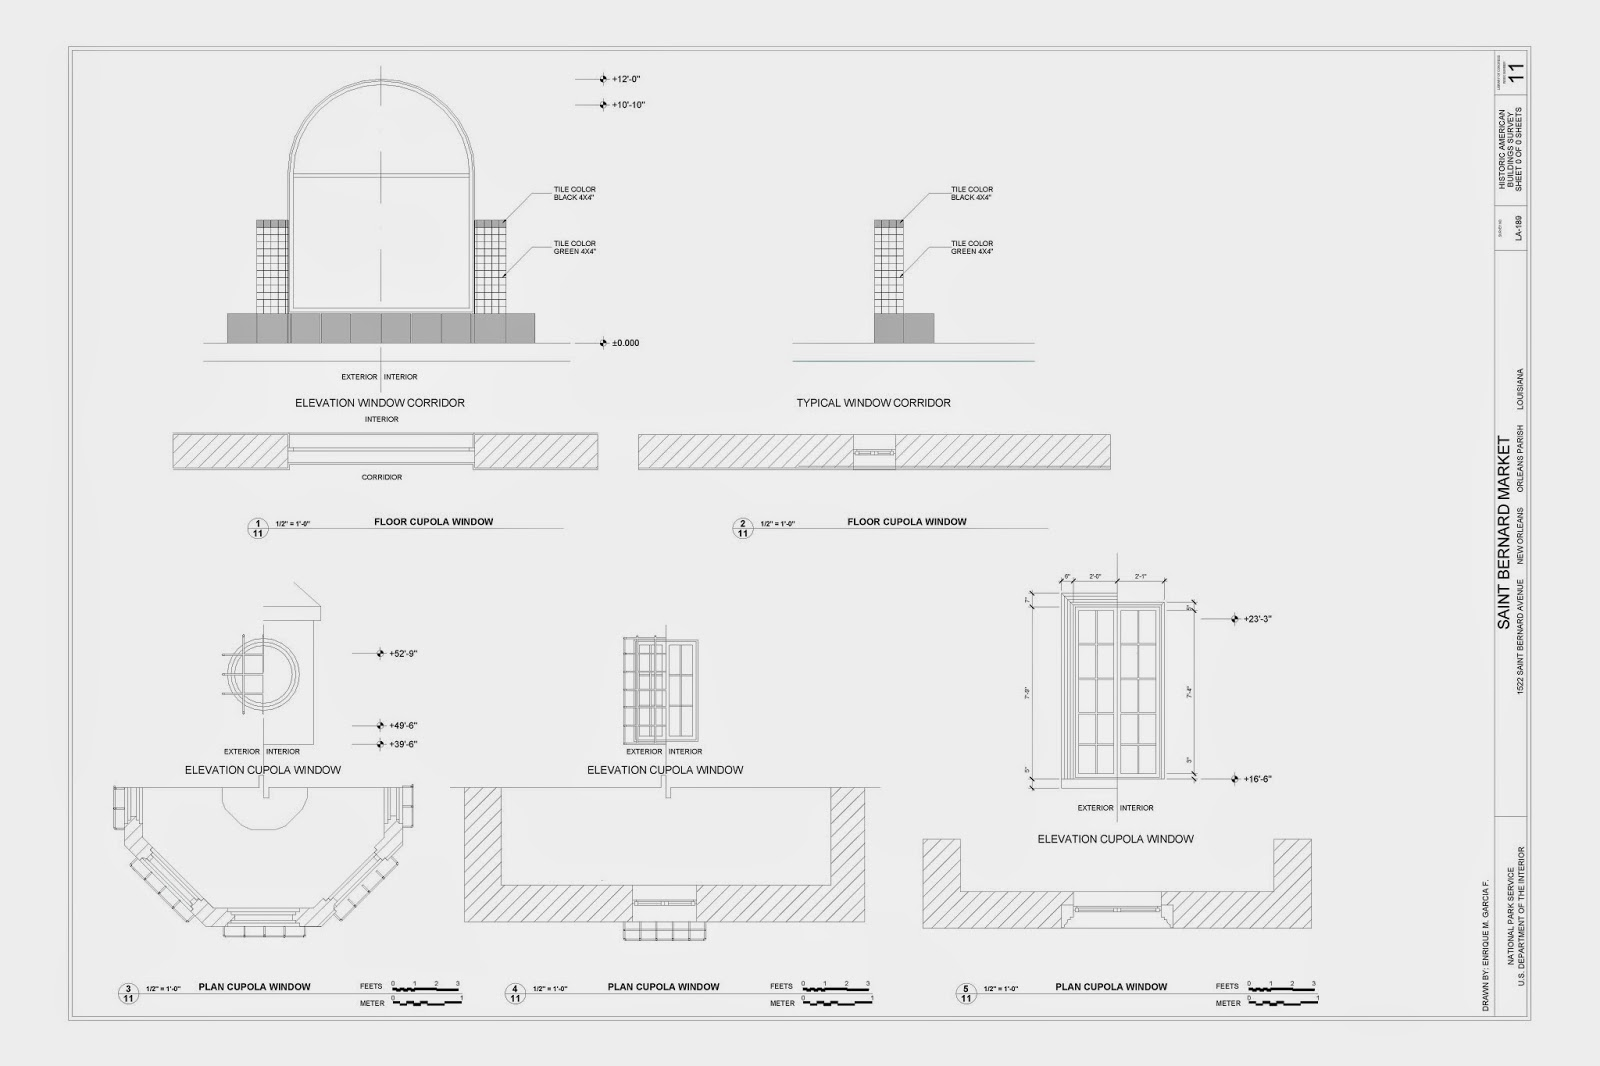 Ed Reyes Design Drafting Eddie Assoc Aia Cupola Schematic Work On This Historical Project With My Classmates Was Great Pleasure For Me And A Experience Thank You The Opportunity